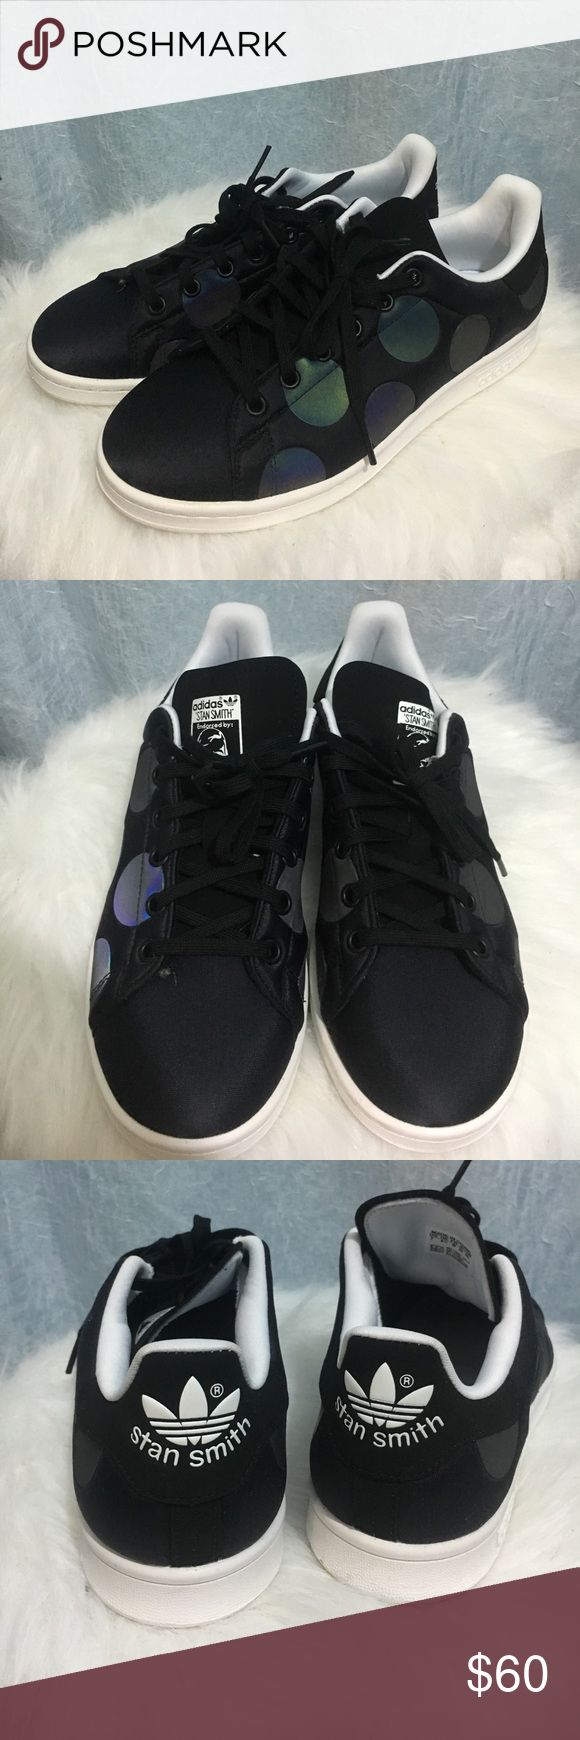 Iridescent Polka Dot Stan Smiths Super awesome Adidas Stan Smiths in black neoprene with reflective polka dots. Worn once, in great condition and super comfortable. Does not come with the box. Size Womens 9/Mens 7. adidas Shoes Sneakers